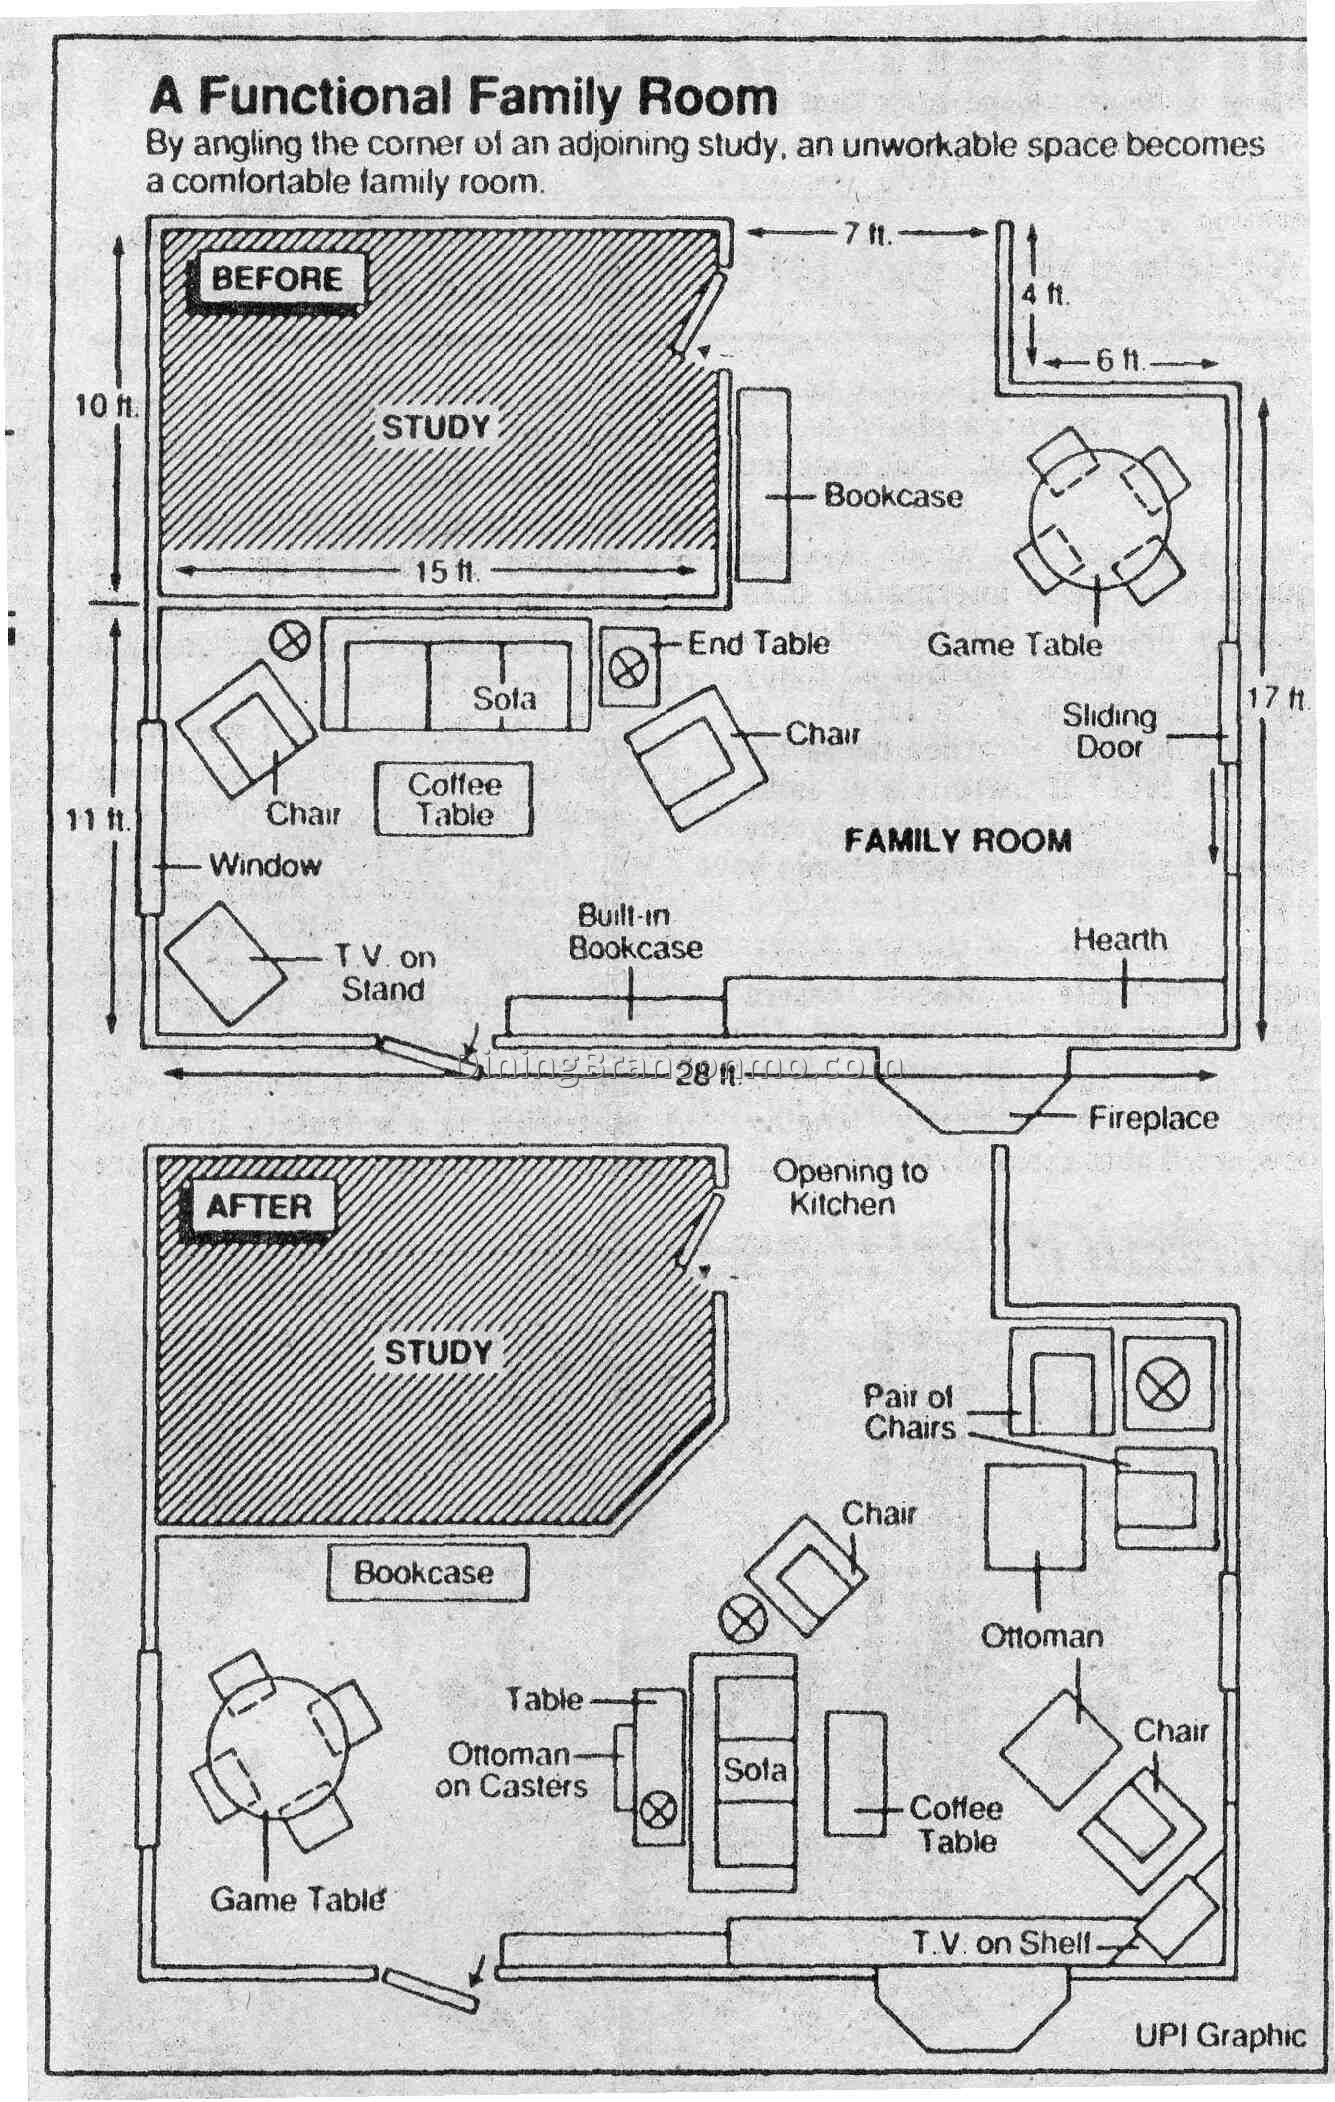 dining room furniture layout. L Shaped Living Room Dining Furniture Layout 1 G